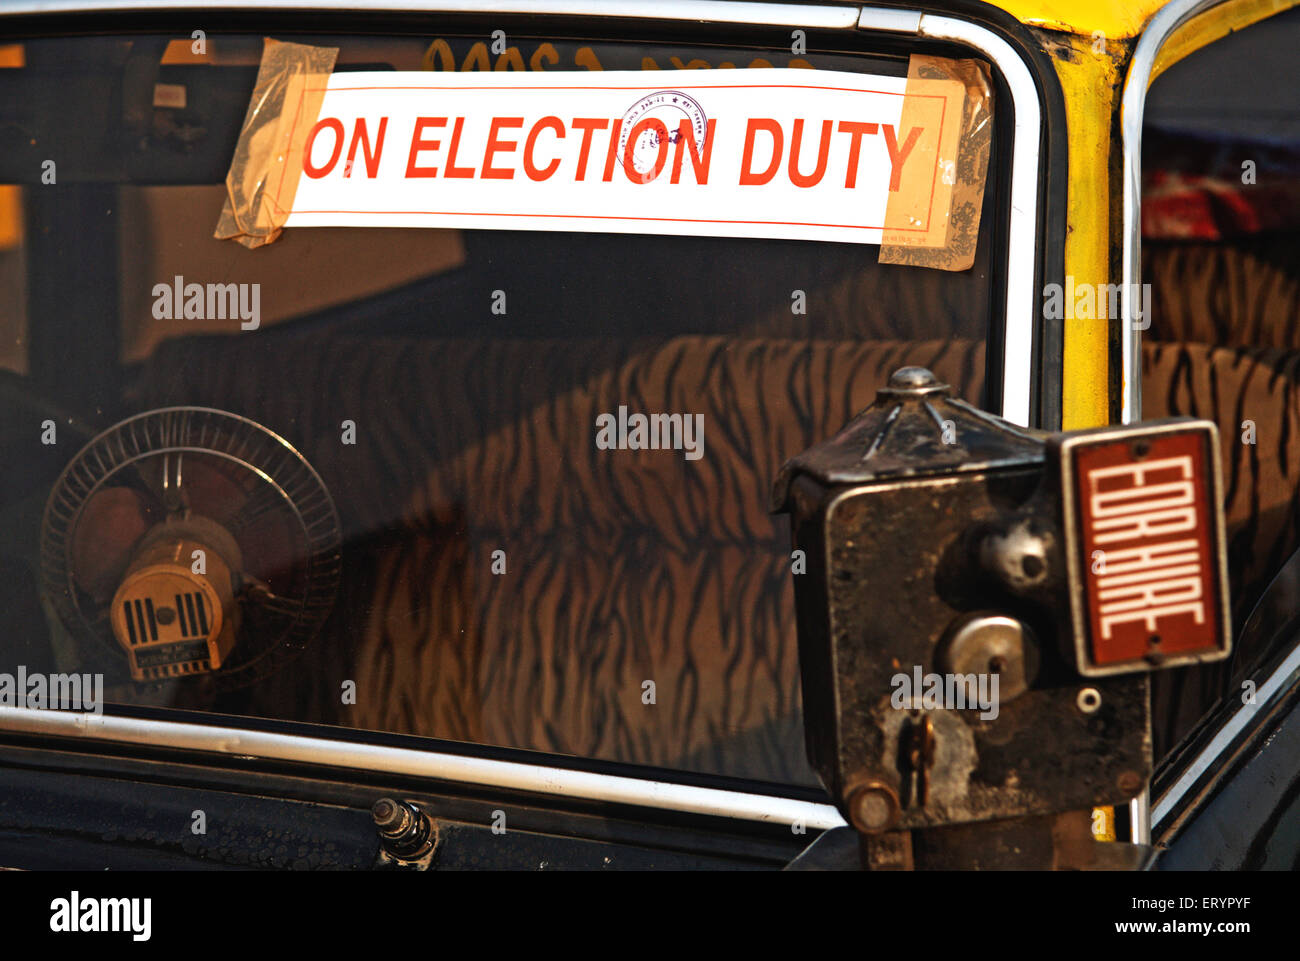 Meter of taxis hired for election duty in Bombay Mumbai  ; Maharashtra  ; India 29 April 2009 - Stock Image